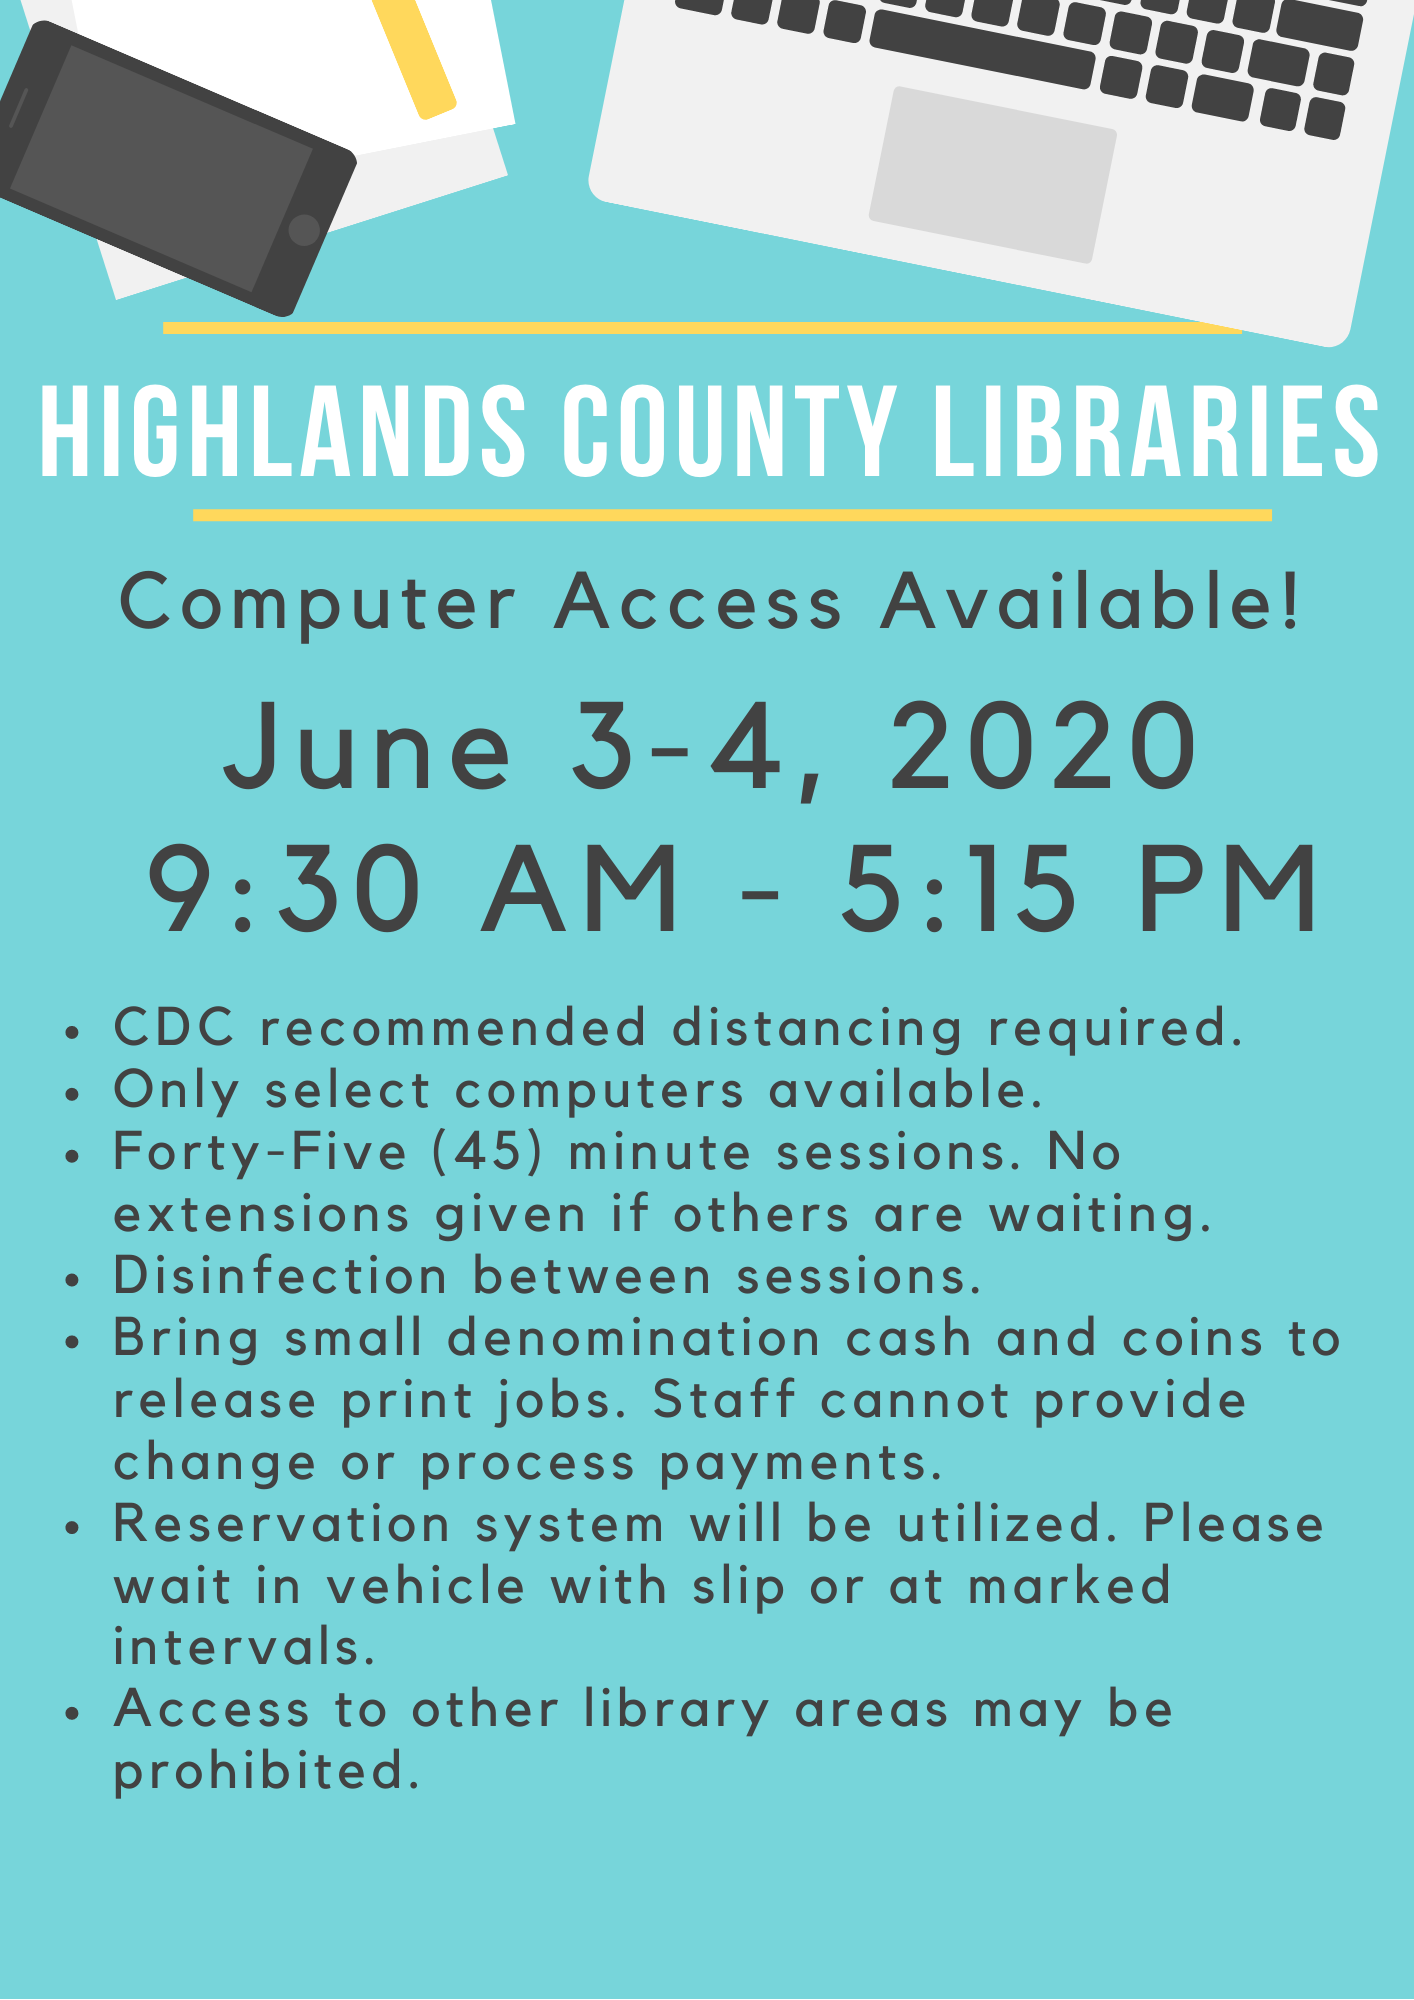 Highlands County Public Libraries will be offering computer usage on June 3-4, 2020 from 9:30 AM to 5:15 PM. Computers will automatically log off at 5:15 PM. Sessions will be limited to 45 minutes. Social distancing lines will be marked on the sidewalk if you choose to wait there, and if not please wait in your vehicle with a reservation slip. All other areas of the libraries will be closed and not available for use or access. Computer service available at Avon Park, Sebring, and Lake Placid Libraries. Please call your branch for questions or assistance. Avon Park is 863-452-3803, Sebring is 863-402-6716, and Lake Placid is 863-699-3705.